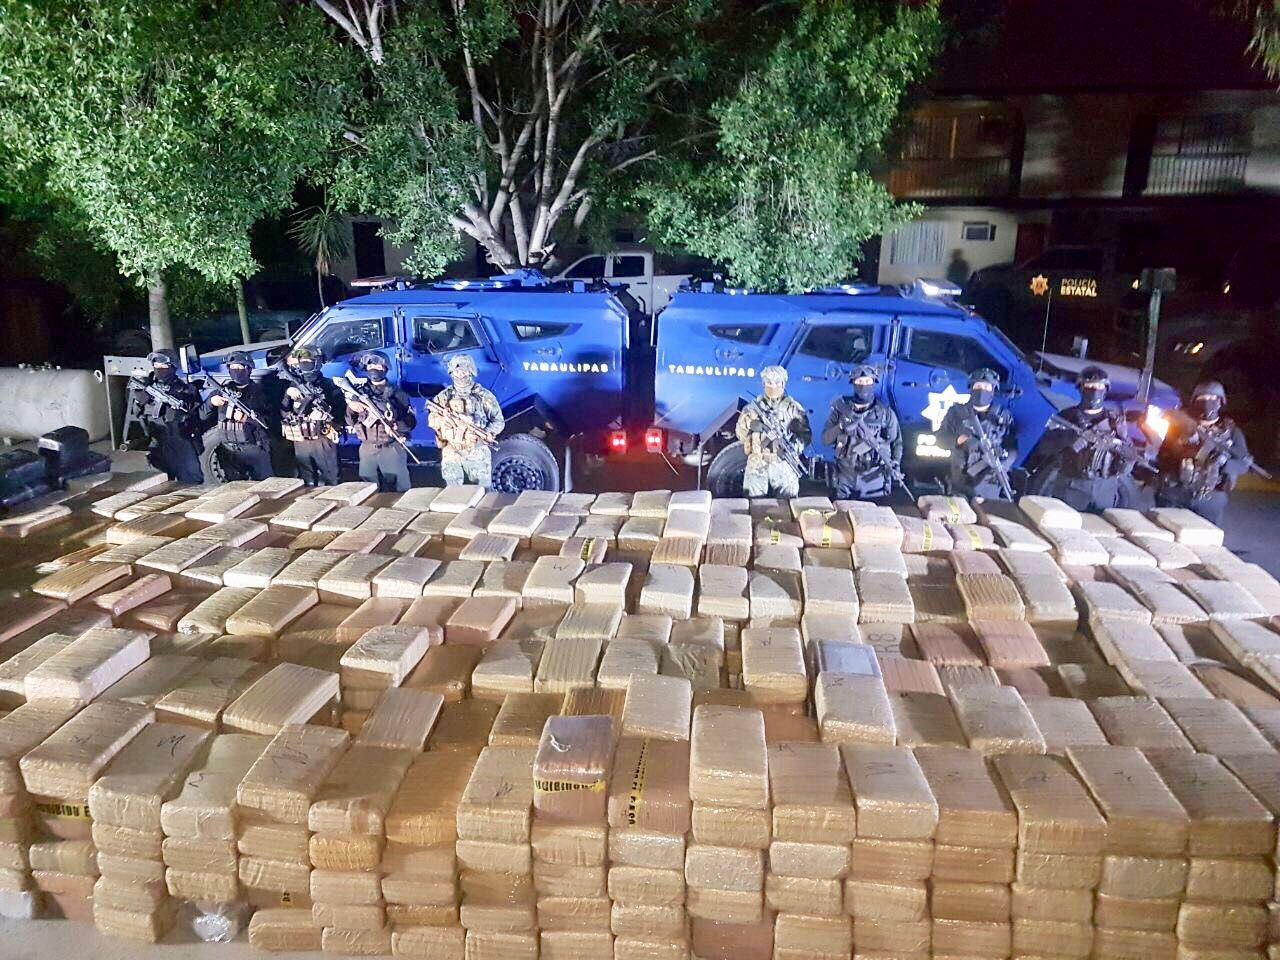 State police and marines have seized more than 5 tons of marijuana near the Texas border in the northern Mexican state of Tamaulipas. (Photos courtesy of the Government of Tamaulipas)